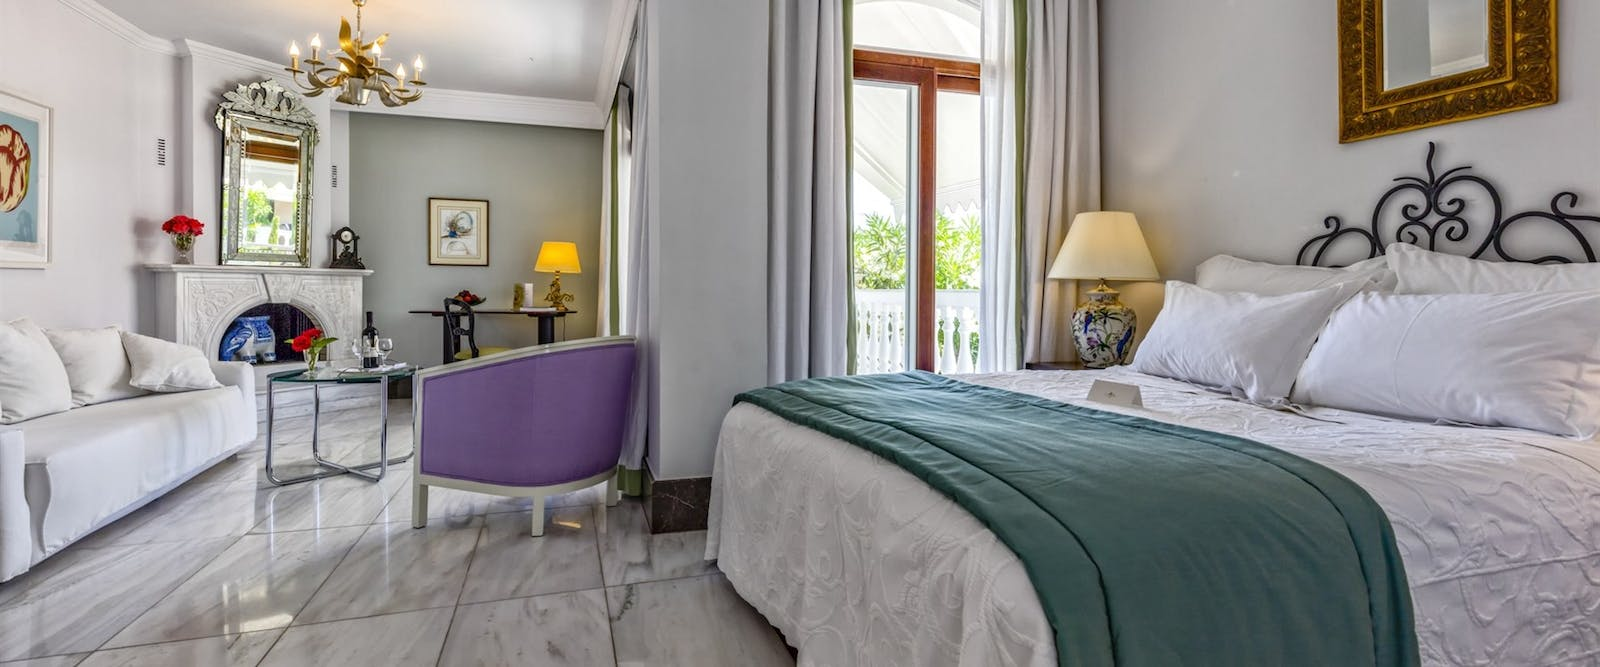 Deluxe Junior Suite at Danai Beach Resort & Villas, Halkidiki, Greece